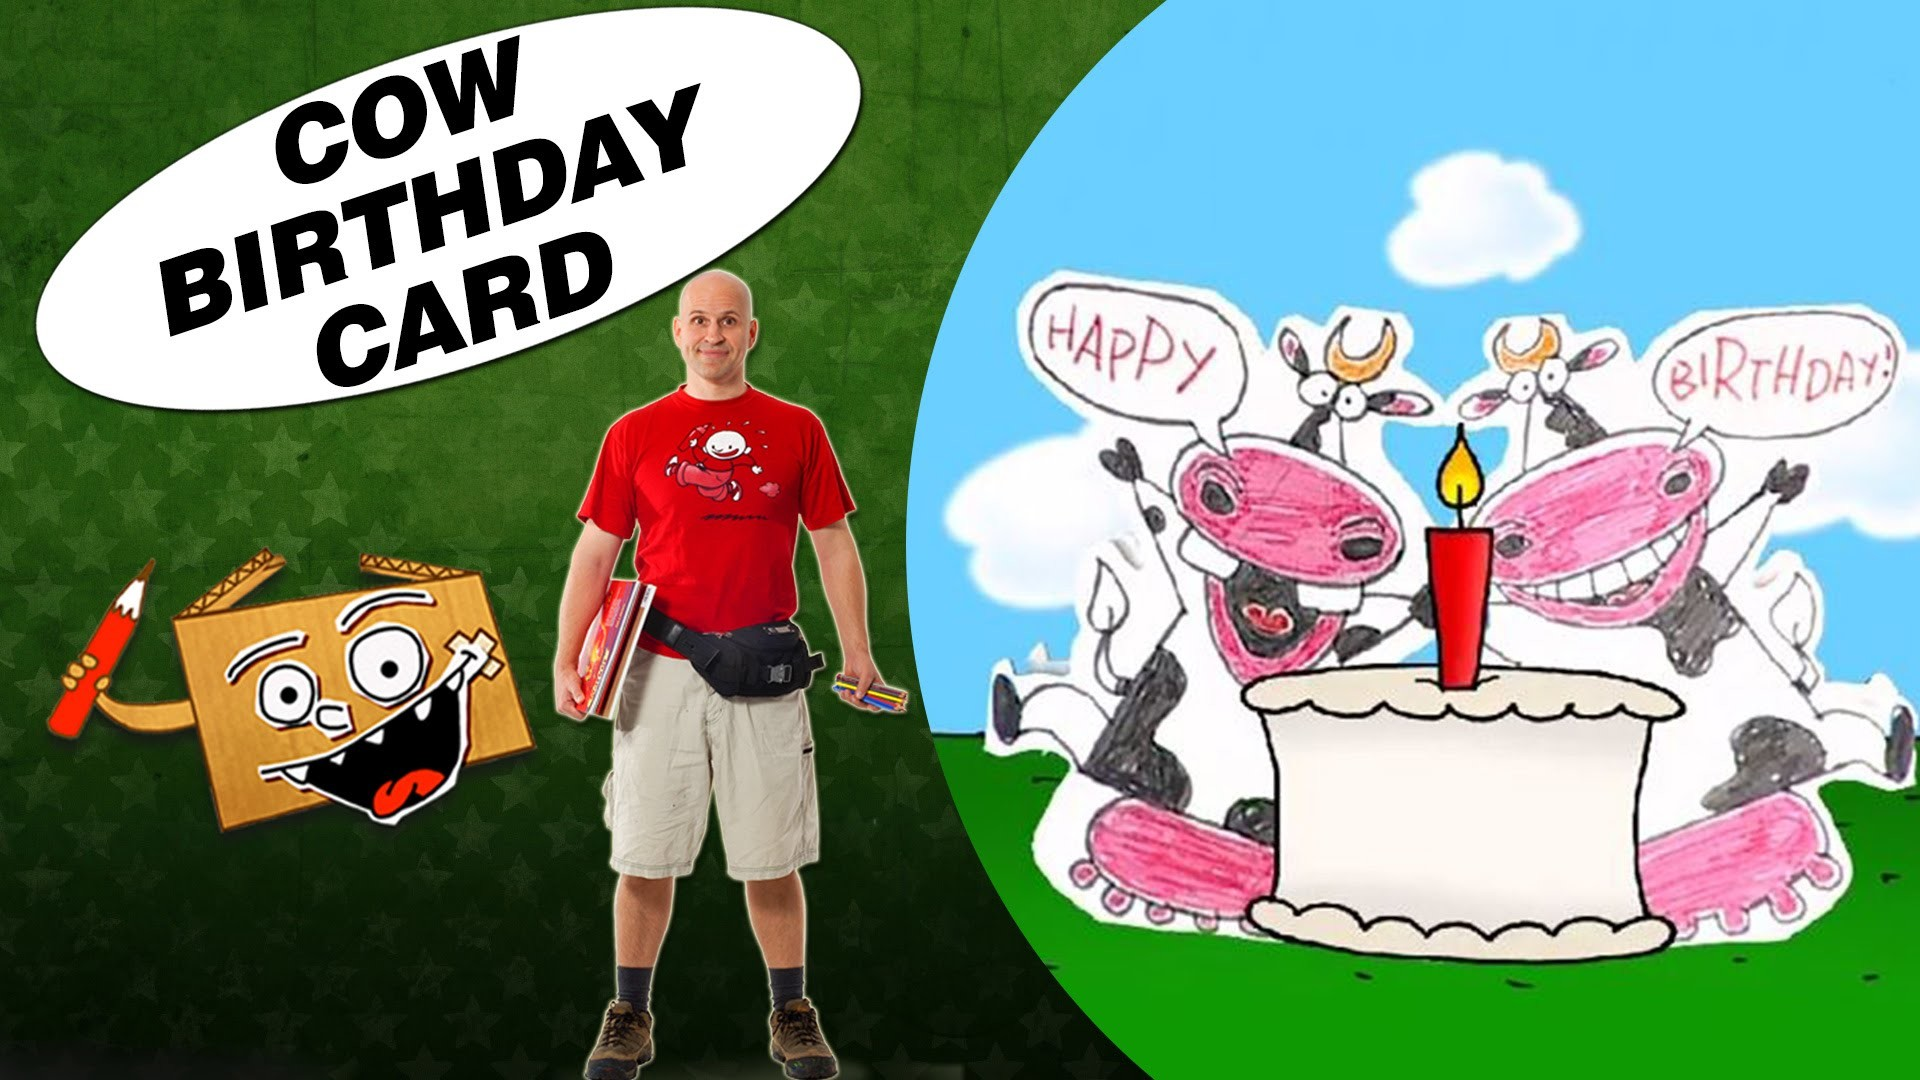 Crafts Ideas for Kids - Cow Birthday Card   DIY on BoxYourSelf